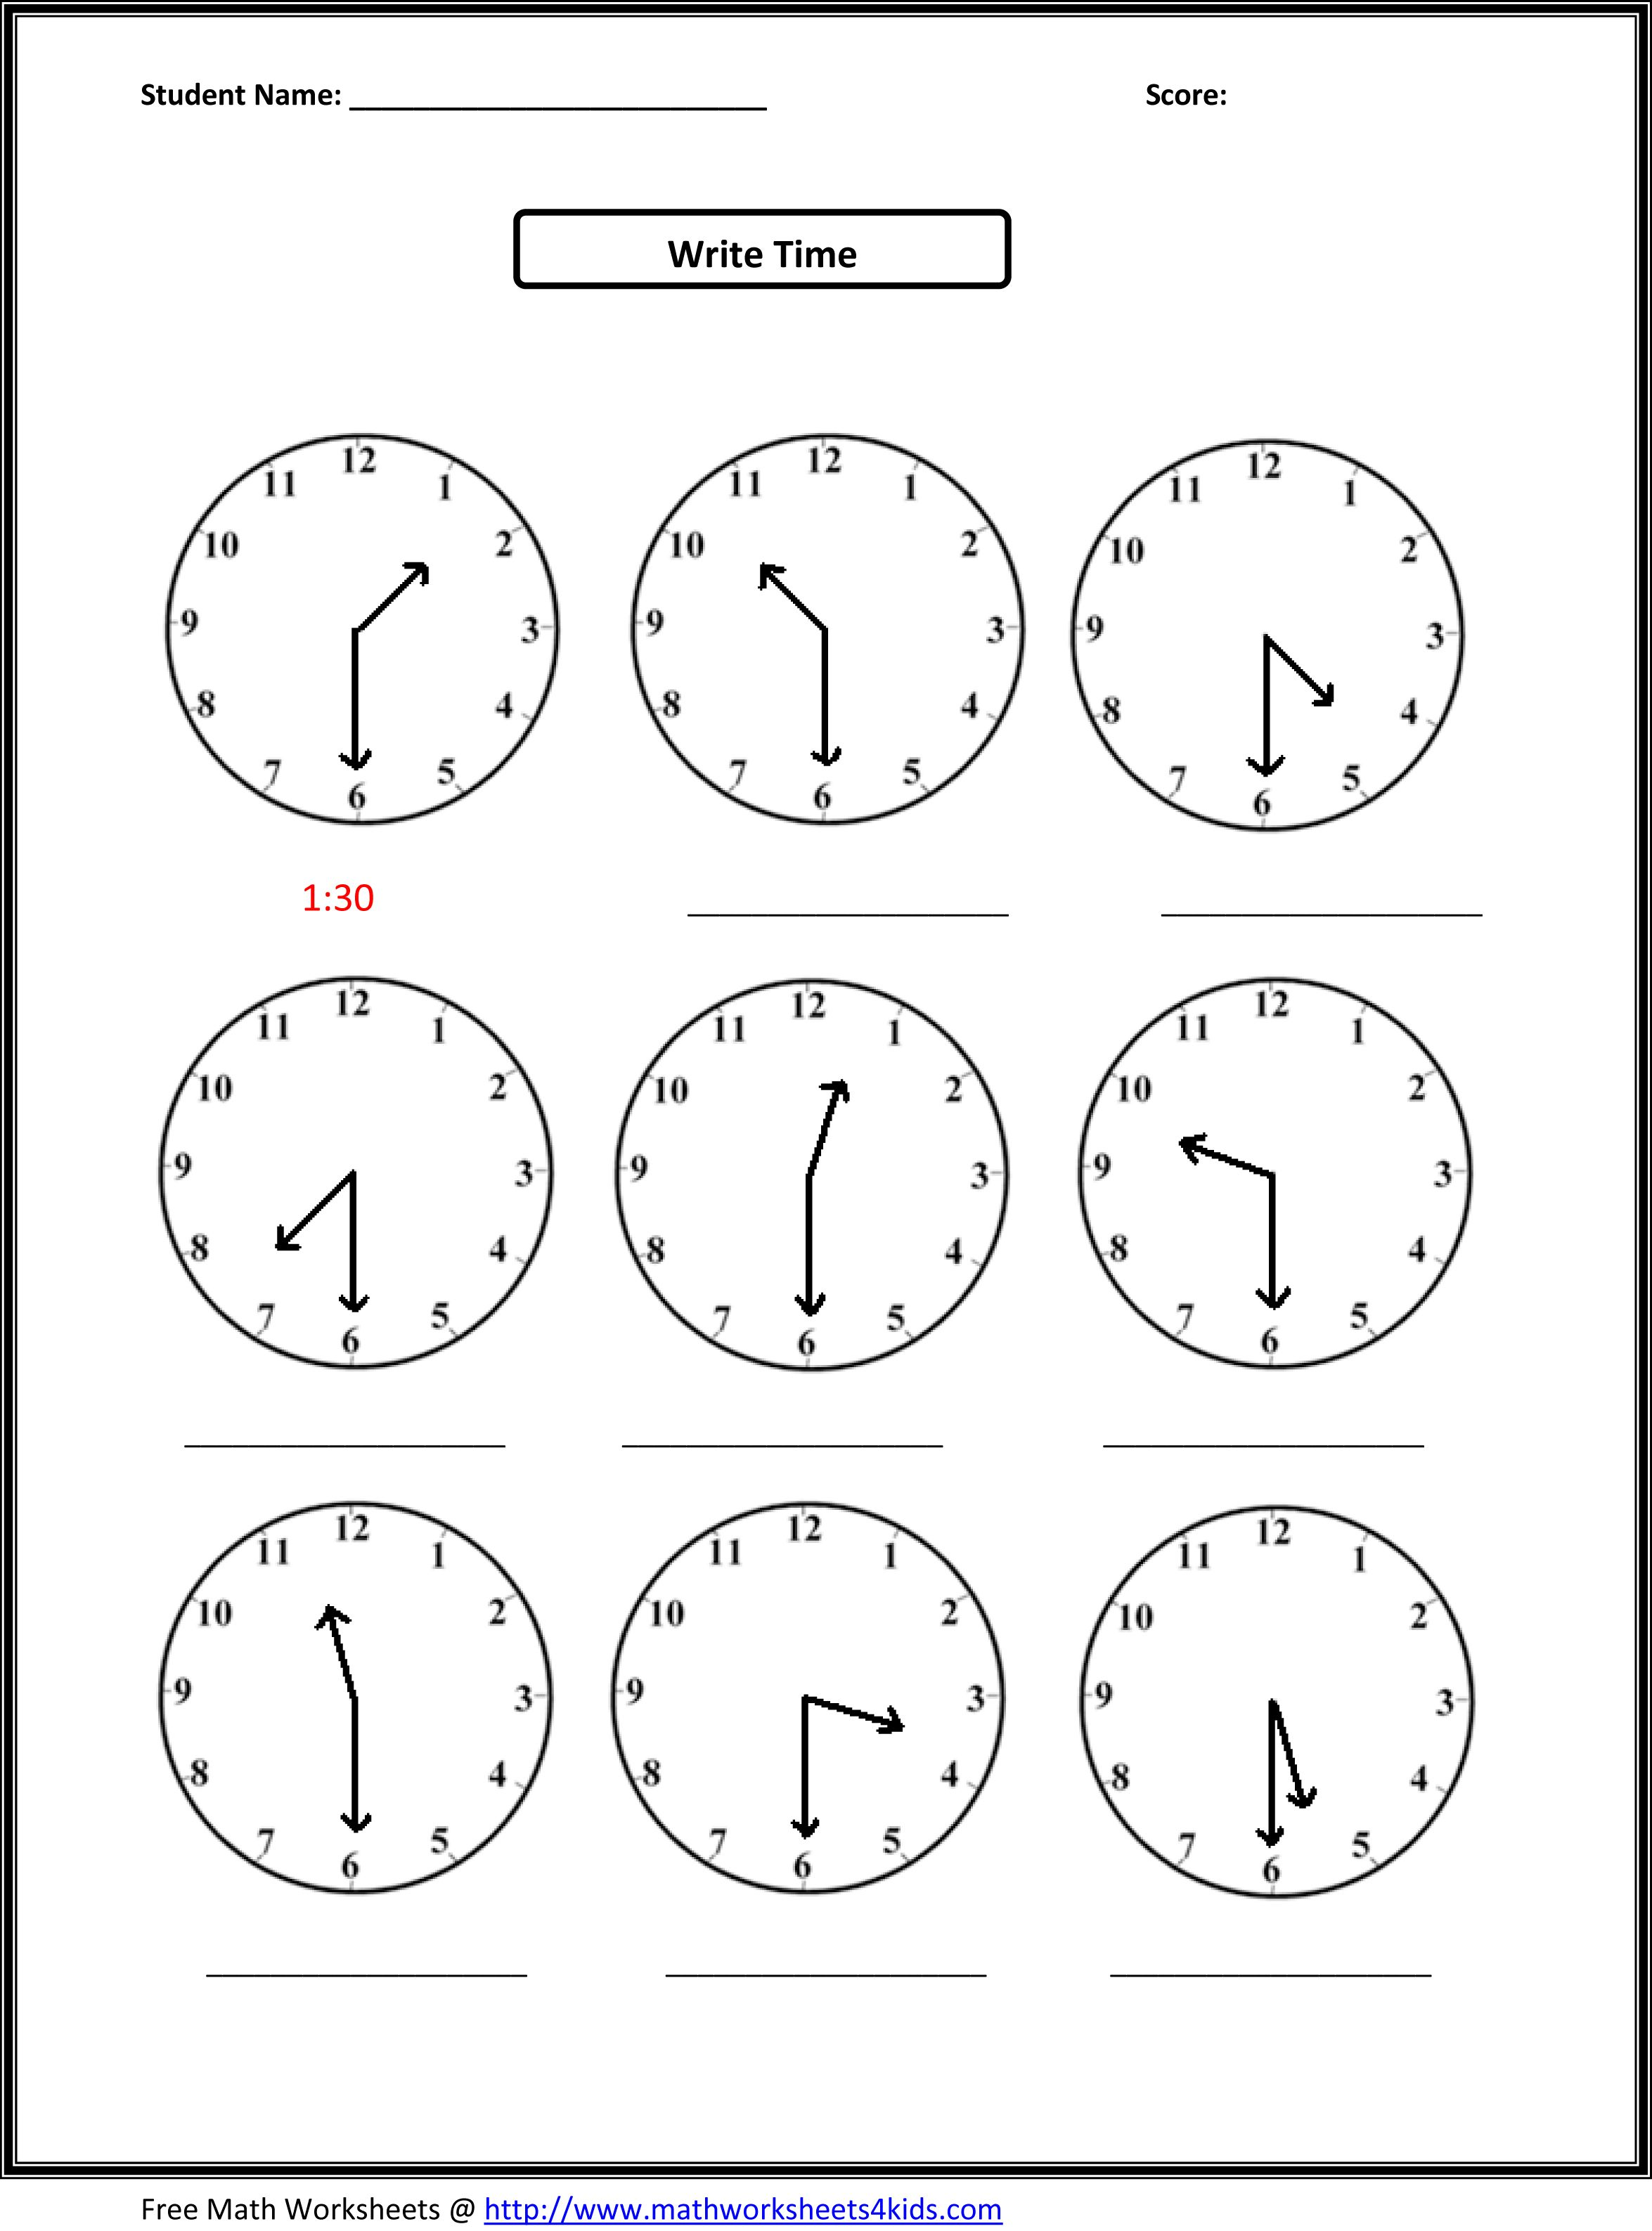 Proatmealus  Inspiring Worksheet On Time For Grade   Reocurent With Luxury Free Printable Telling Time Worksheets Nd Grade  Reocurent With Archaic Translation Dilation Rotation And Reflection Worksheet Also Cut And Paste Money Worksheets In Addition Fractions Th Grade Worksheets And Parts Of Speech Worksheets Th Grade As Well As Adding Three Numbers Worksheets Additionally Multiplication Worksheets  From Reocurentcom With Proatmealus  Luxury Worksheet On Time For Grade   Reocurent With Archaic Free Printable Telling Time Worksheets Nd Grade  Reocurent And Inspiring Translation Dilation Rotation And Reflection Worksheet Also Cut And Paste Money Worksheets In Addition Fractions Th Grade Worksheets From Reocurentcom